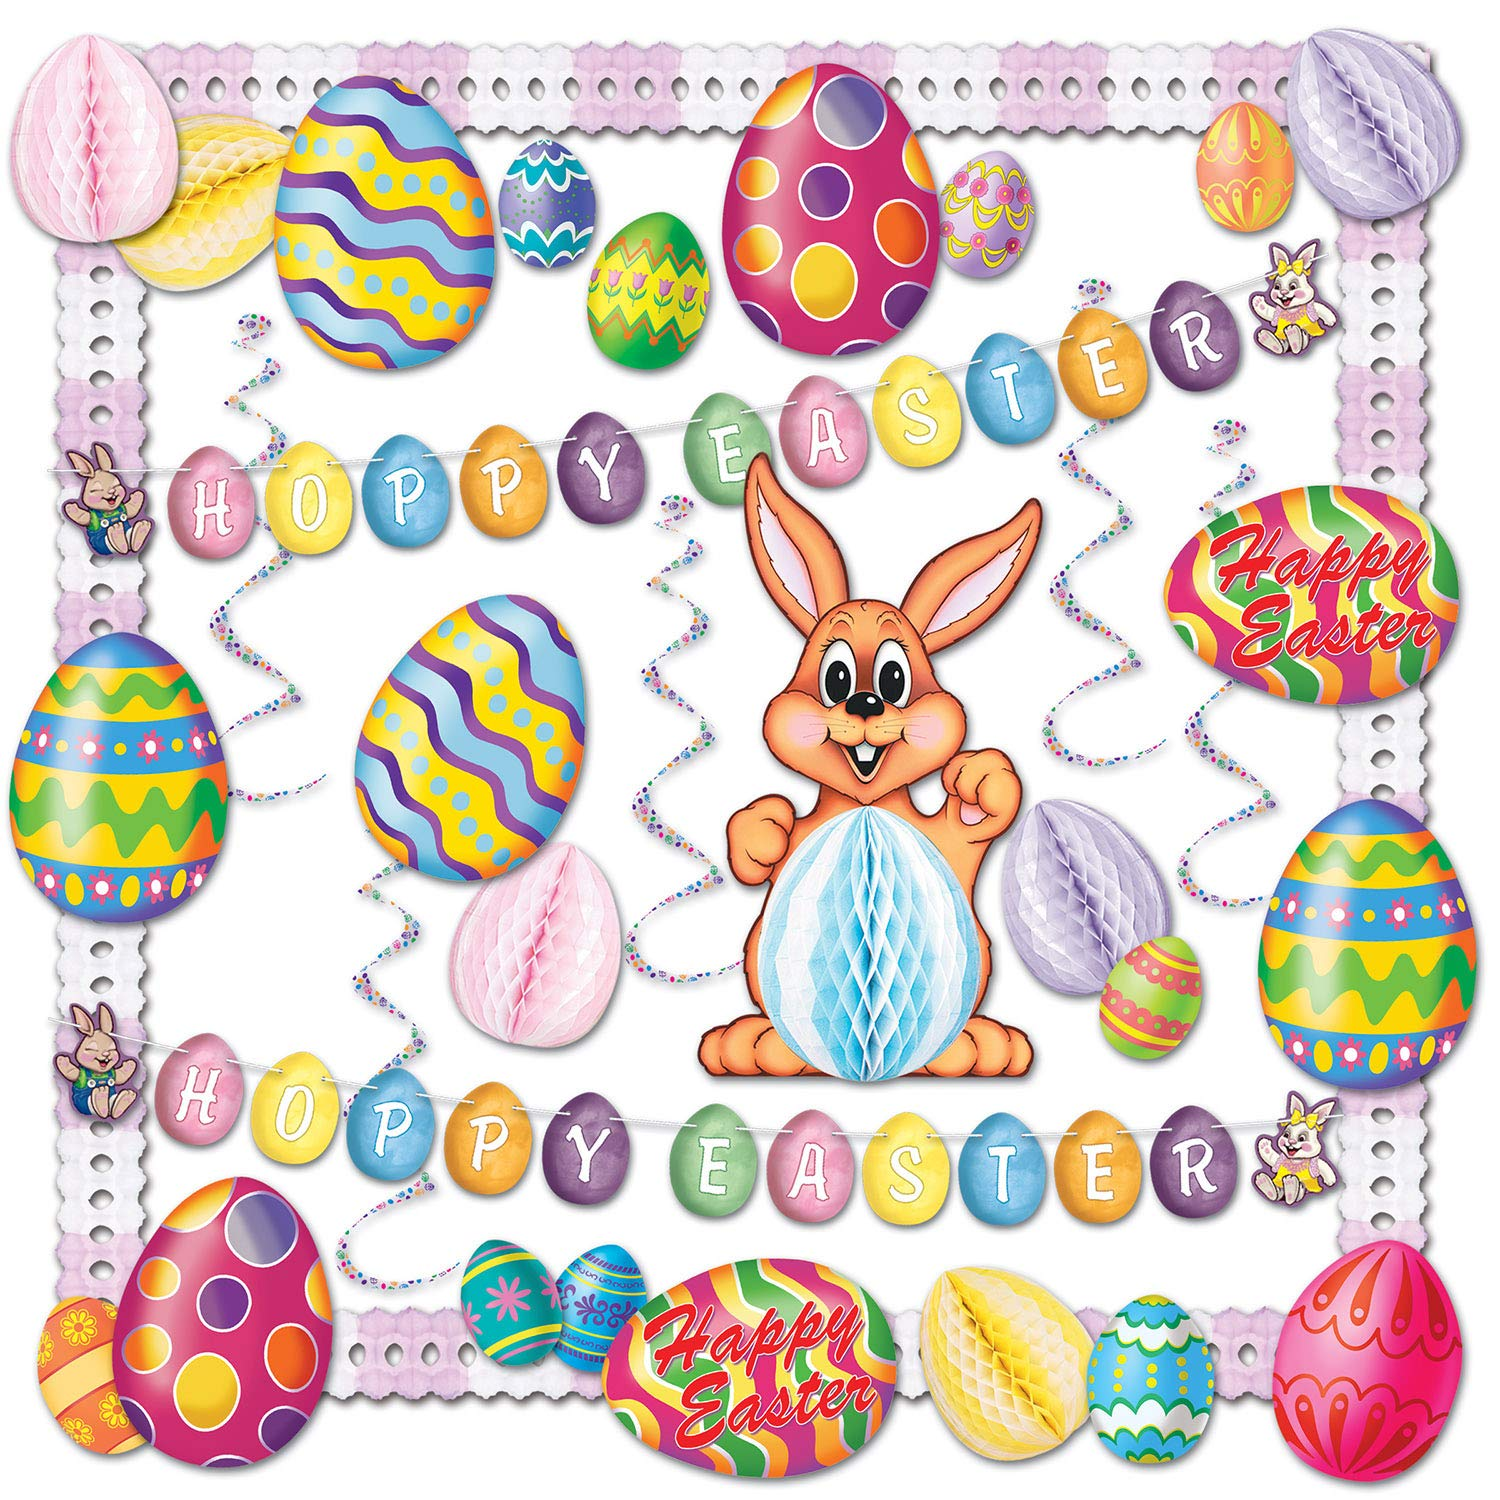 Beistle 44205 26-Piece Easter Decorating Kit by Beistle